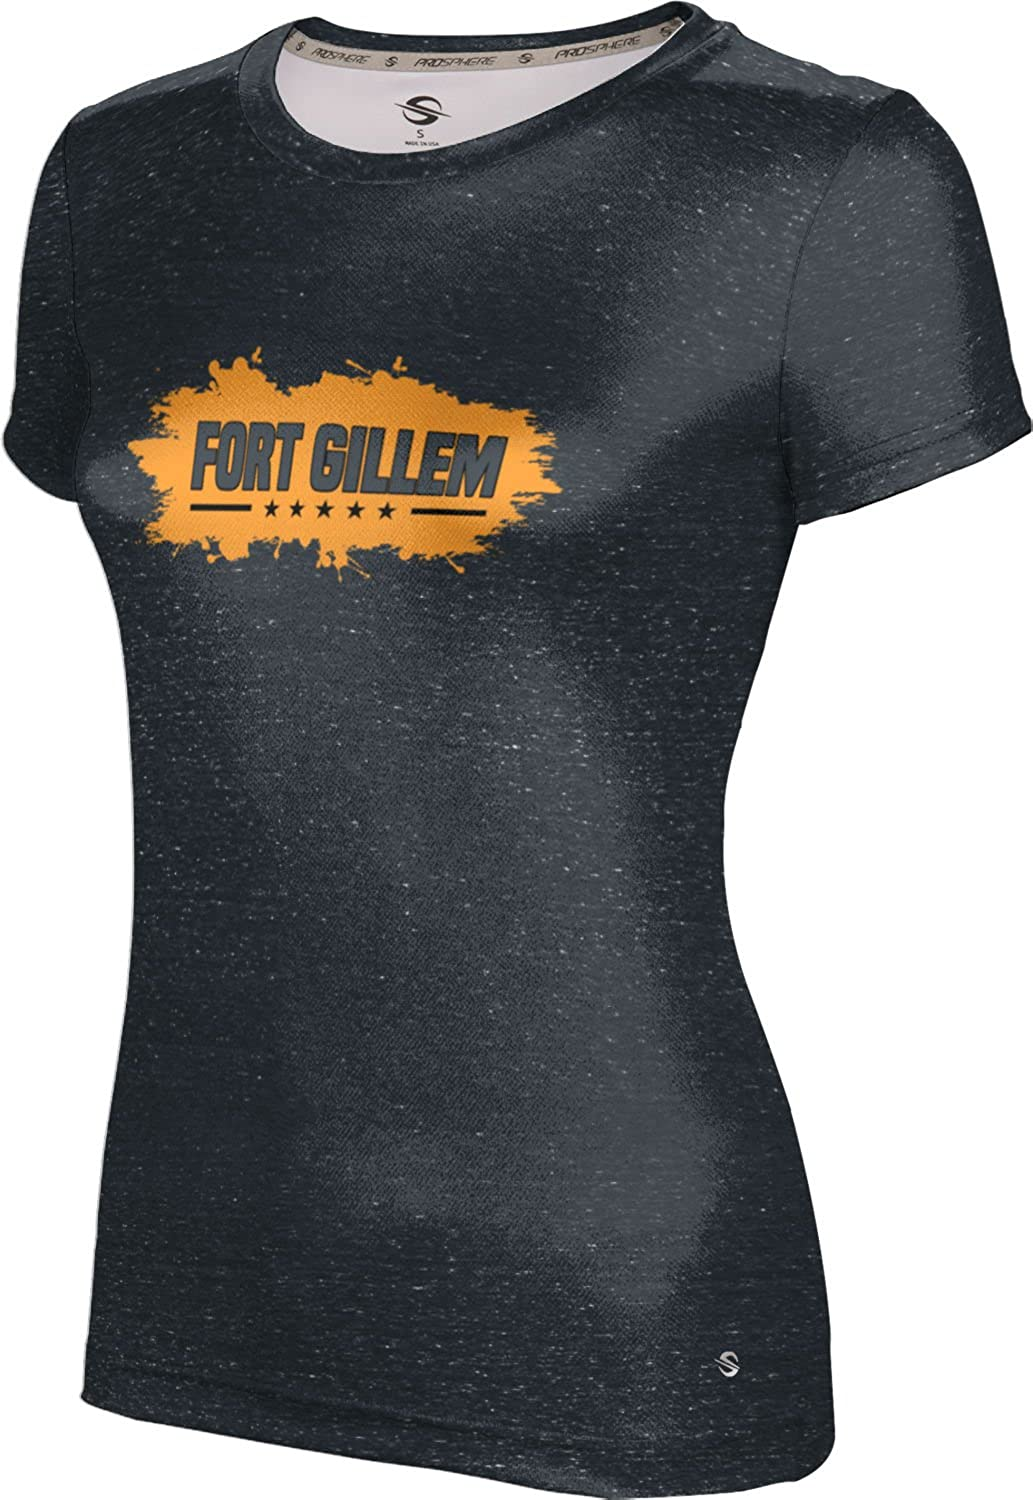 ProSphere Women's Fort Gillem Military Heather Tech Tee